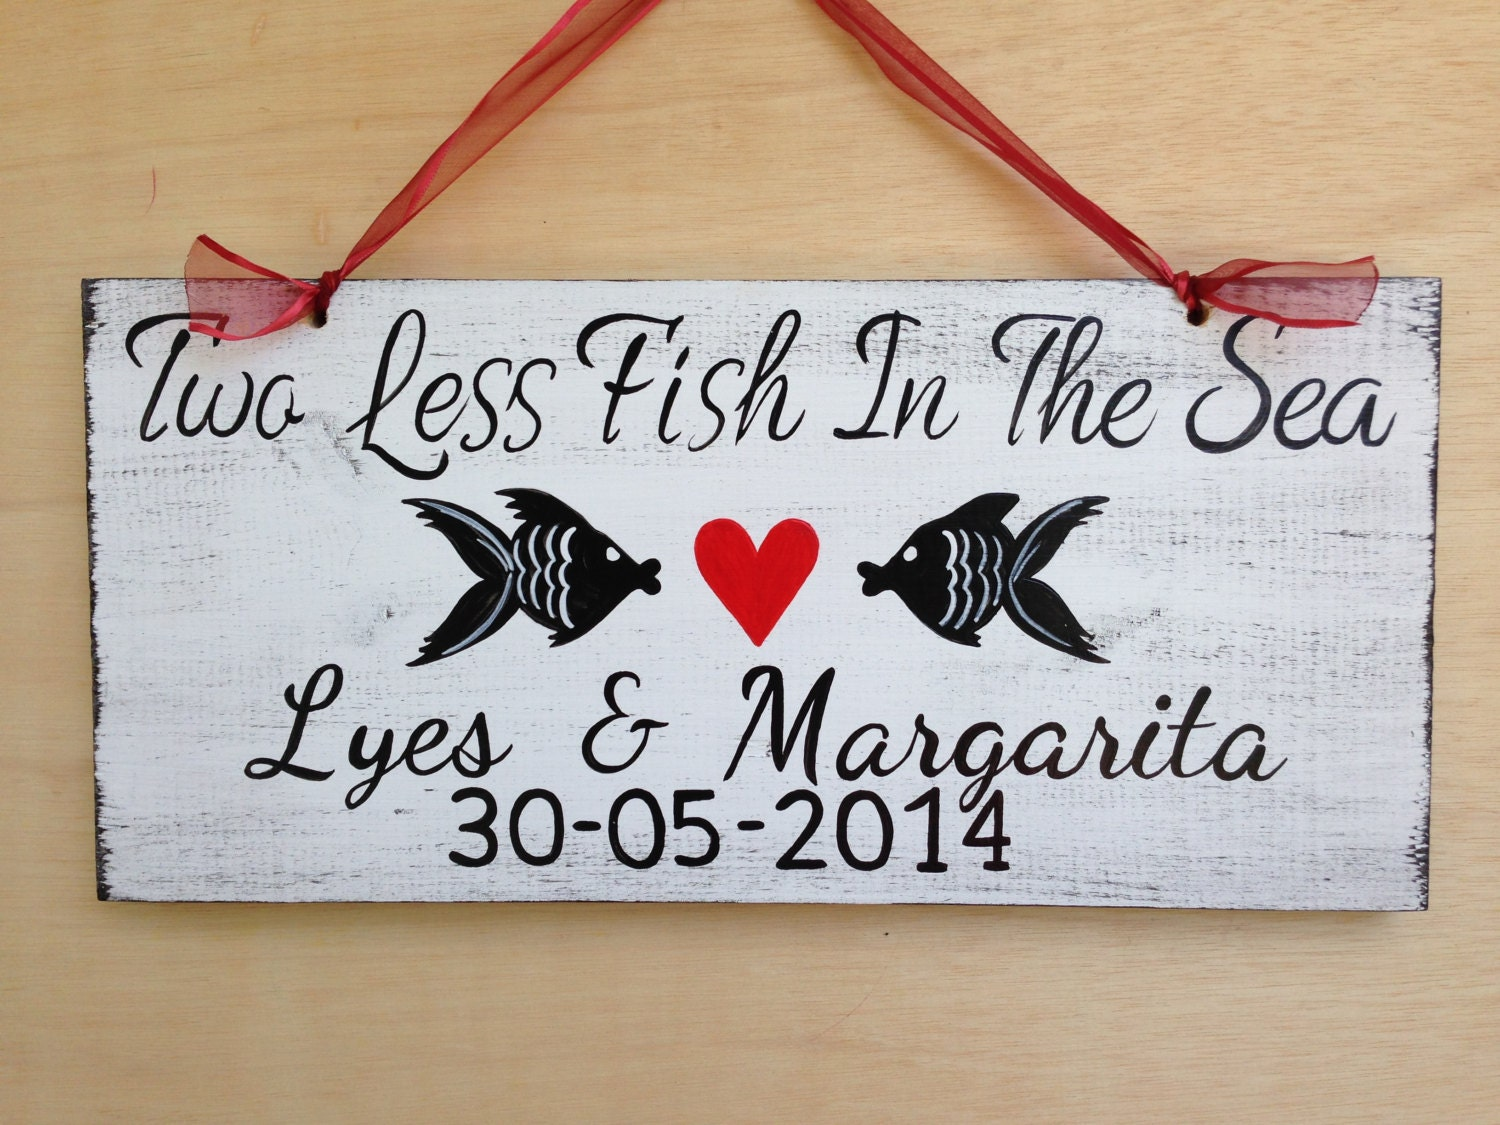 Two Less Fish In The Sea Wedding Name Sign, Beach Wedding Decor ...